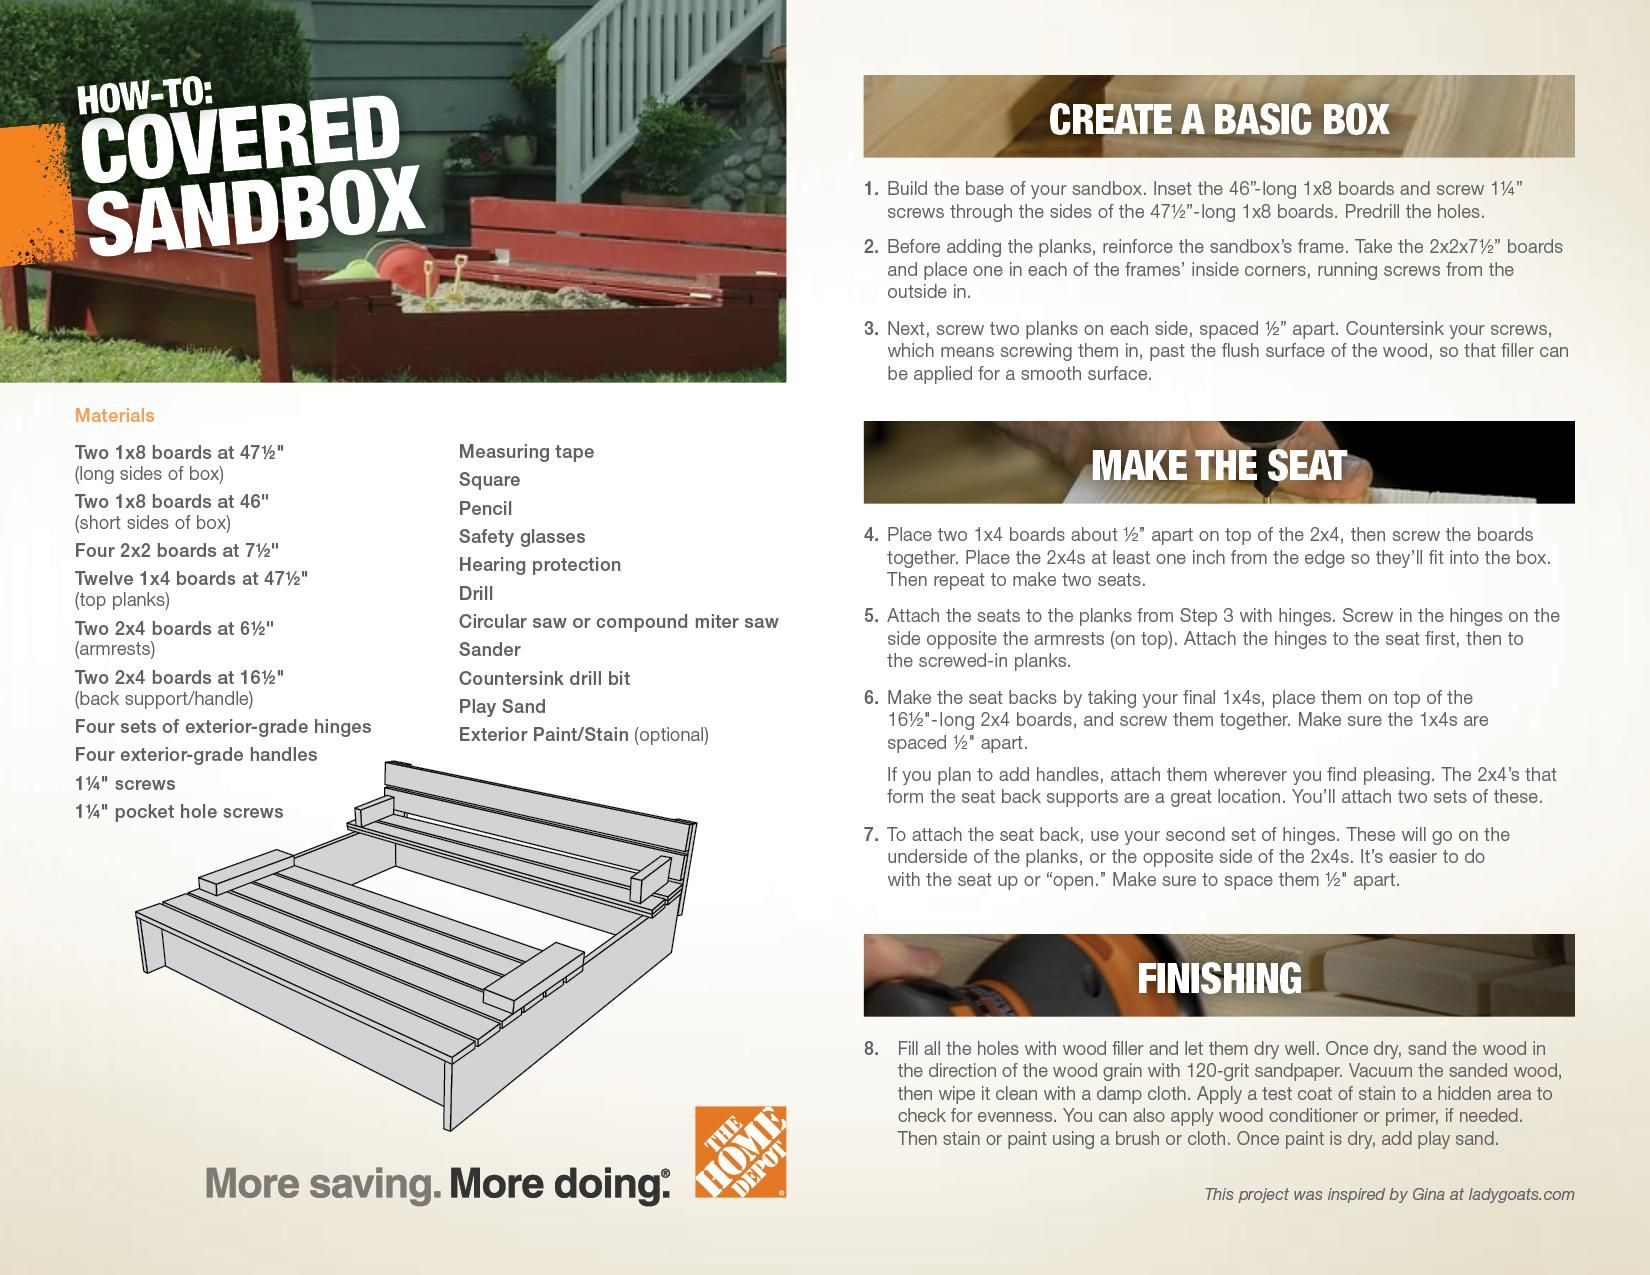 Downloadable Plans For A Covered Sandbox DIY Project From The Home - Home depot protection plan